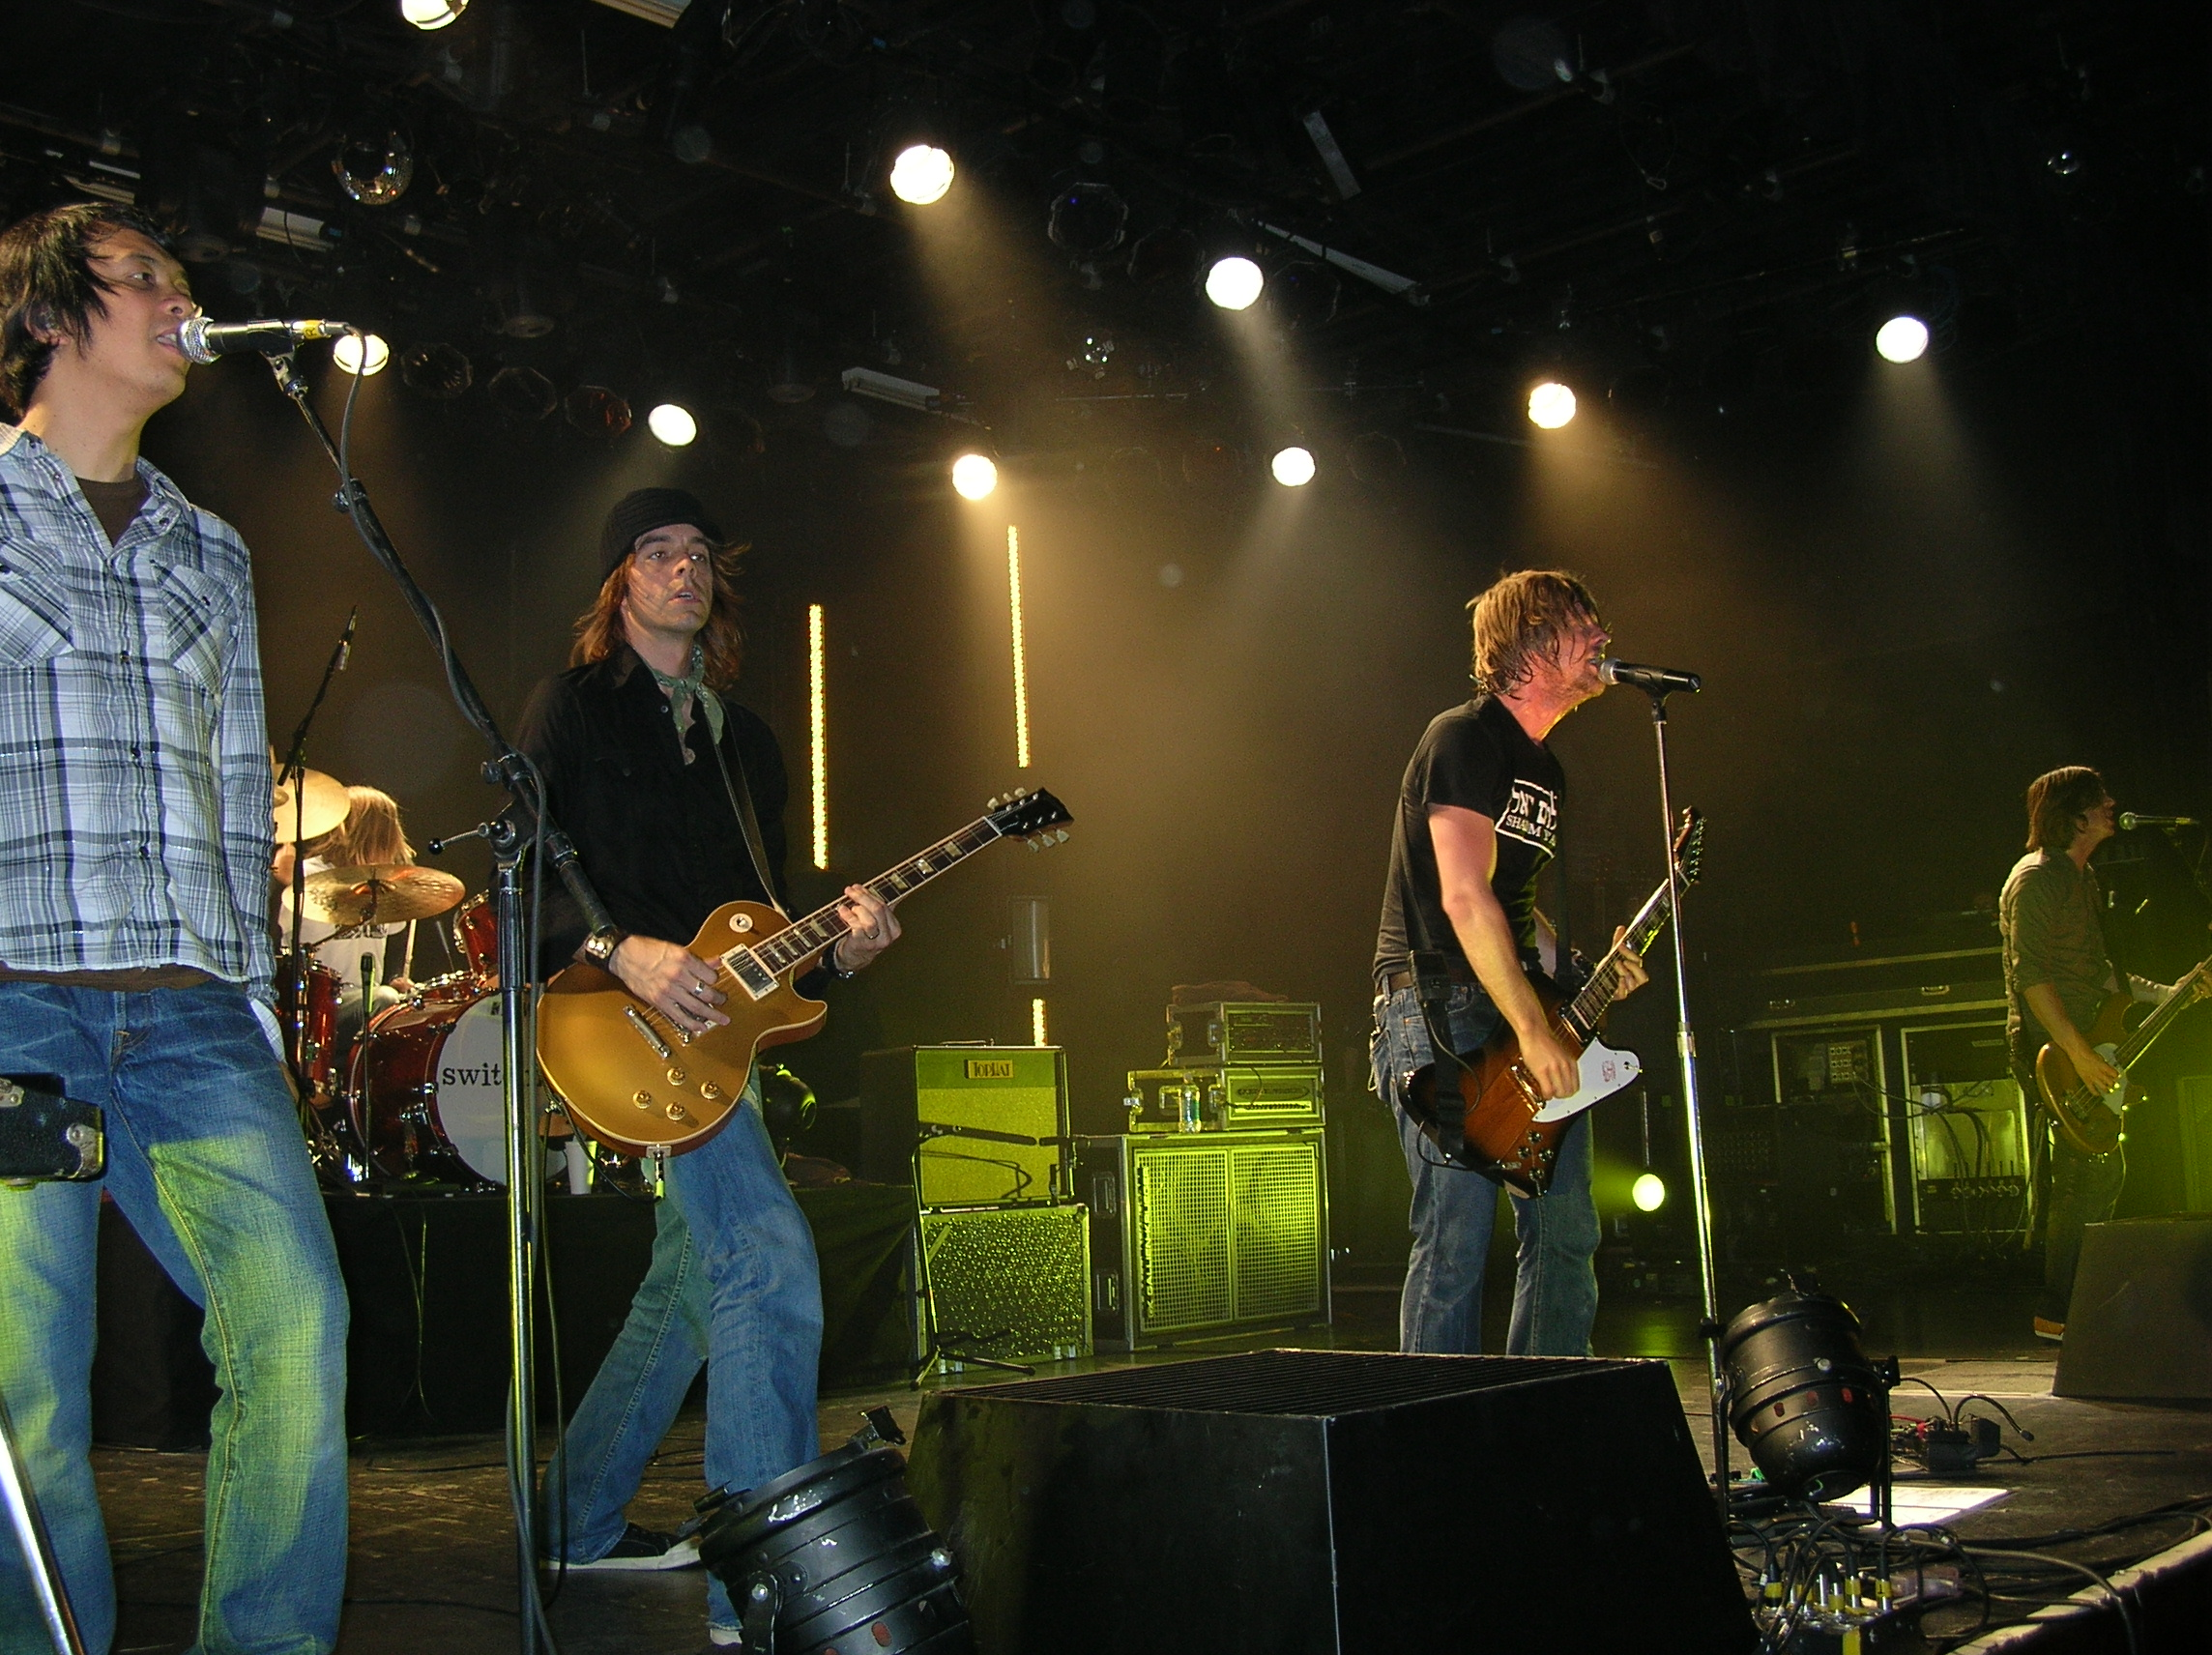 Switchfoot discography - Wikipedia